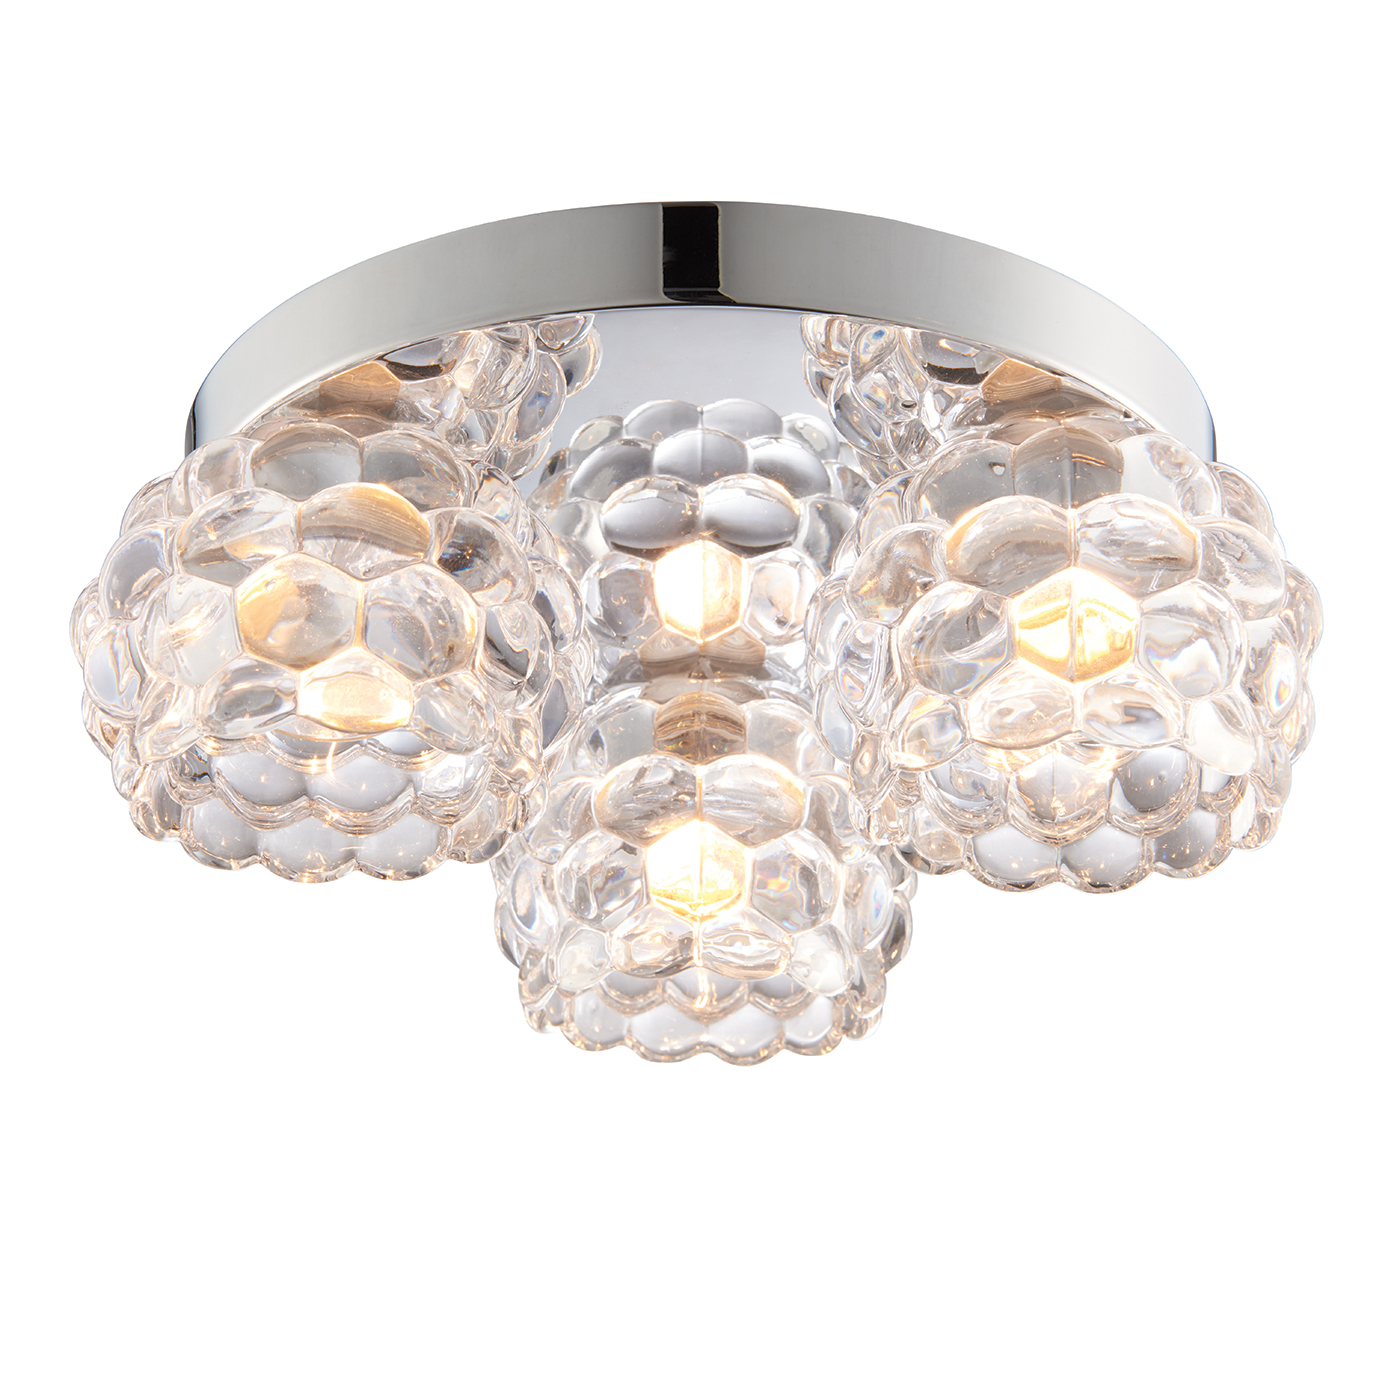 Endon Lawcross 3lt flush bathroom ceiling light IP44 18W chrome & rippled glass Thumbnail 1